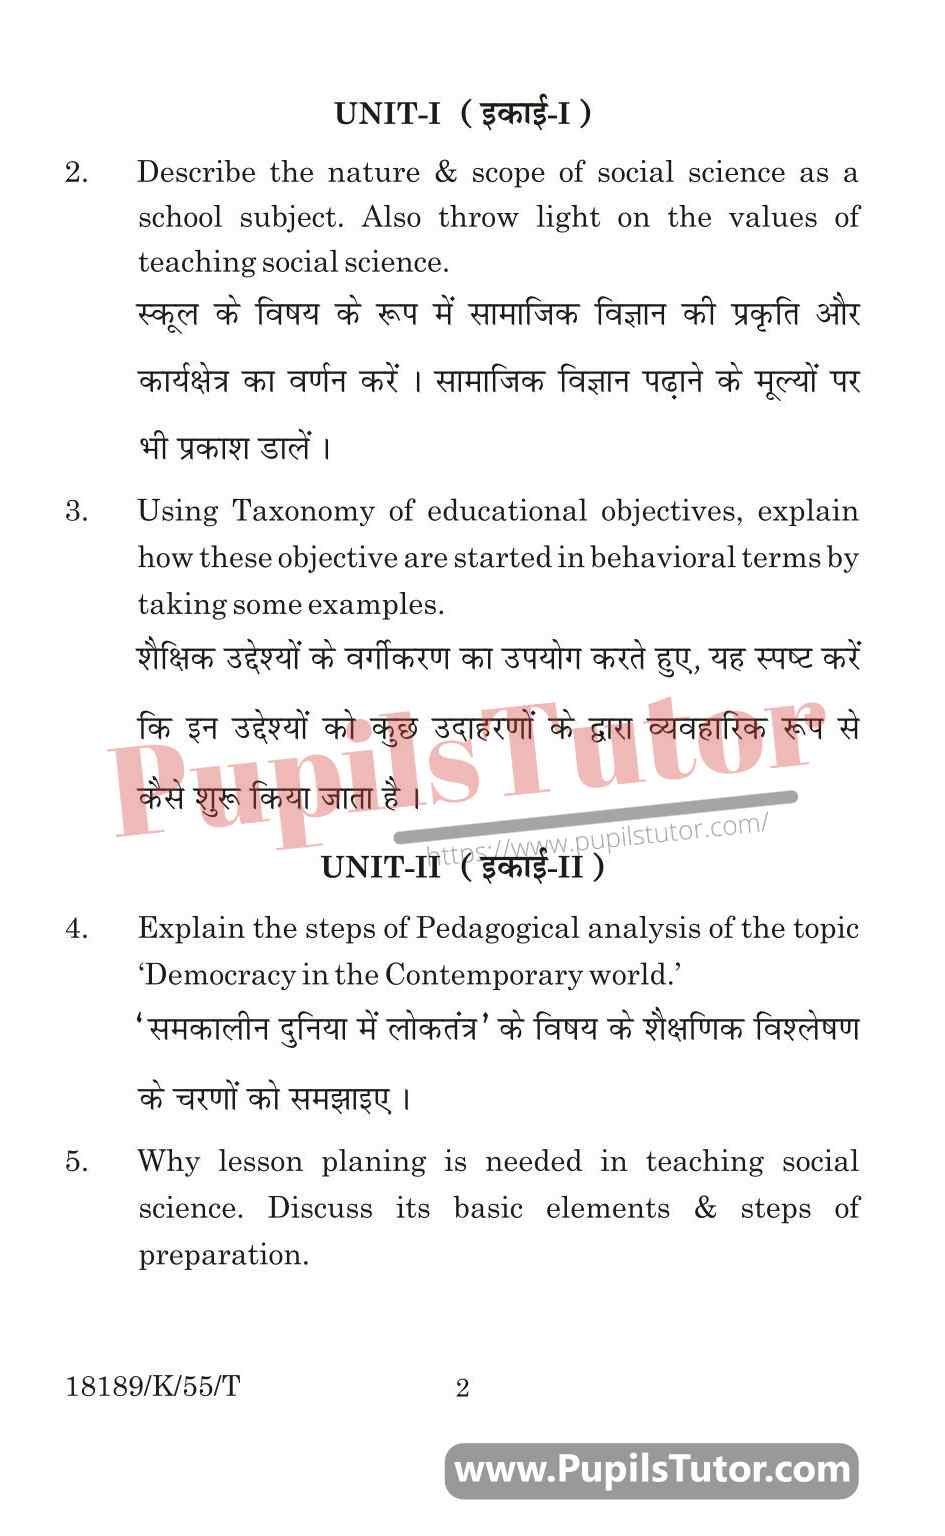 KUK (Kurukshetra University, Haryana) Pedagogy Of Social Science Question Paper 2020 For B.Ed 1st And 2nd Year And All The 4 Semesters In English And Hindi Medium Free Download PDF - Page 2 - www.pupilstutor.com